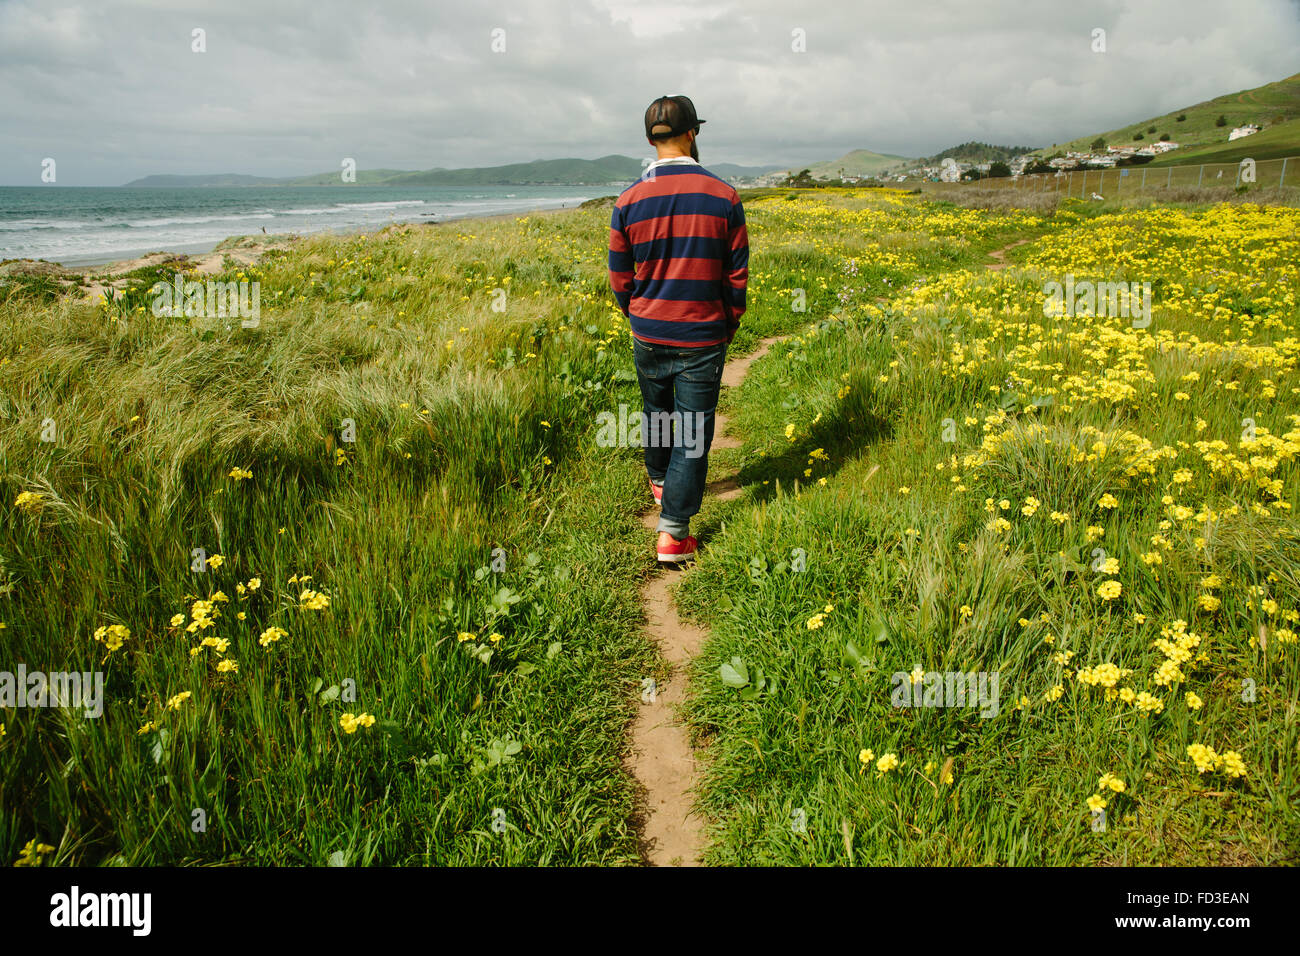 A man walks among the yellow flowers along the shoreline of Big Sur, California. - Stock Image